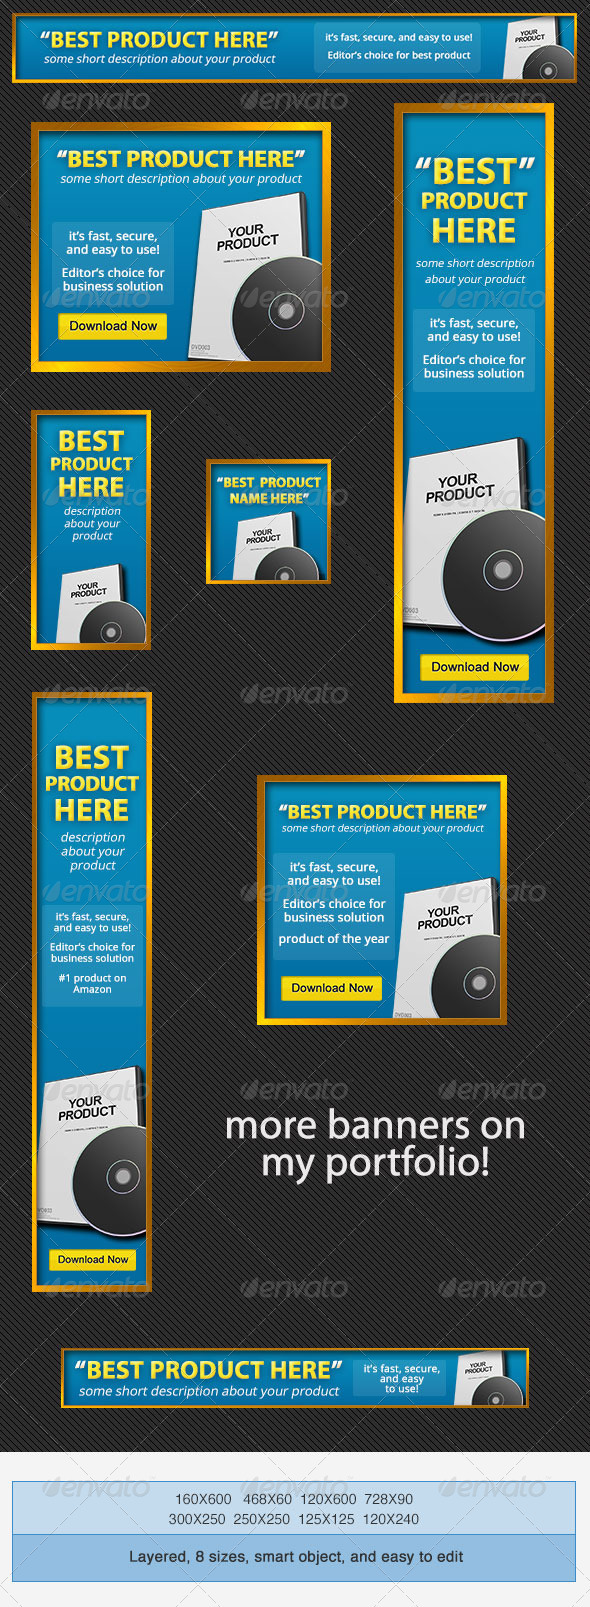 GraphicRiver Product Banners Ad PSD Template 4123631